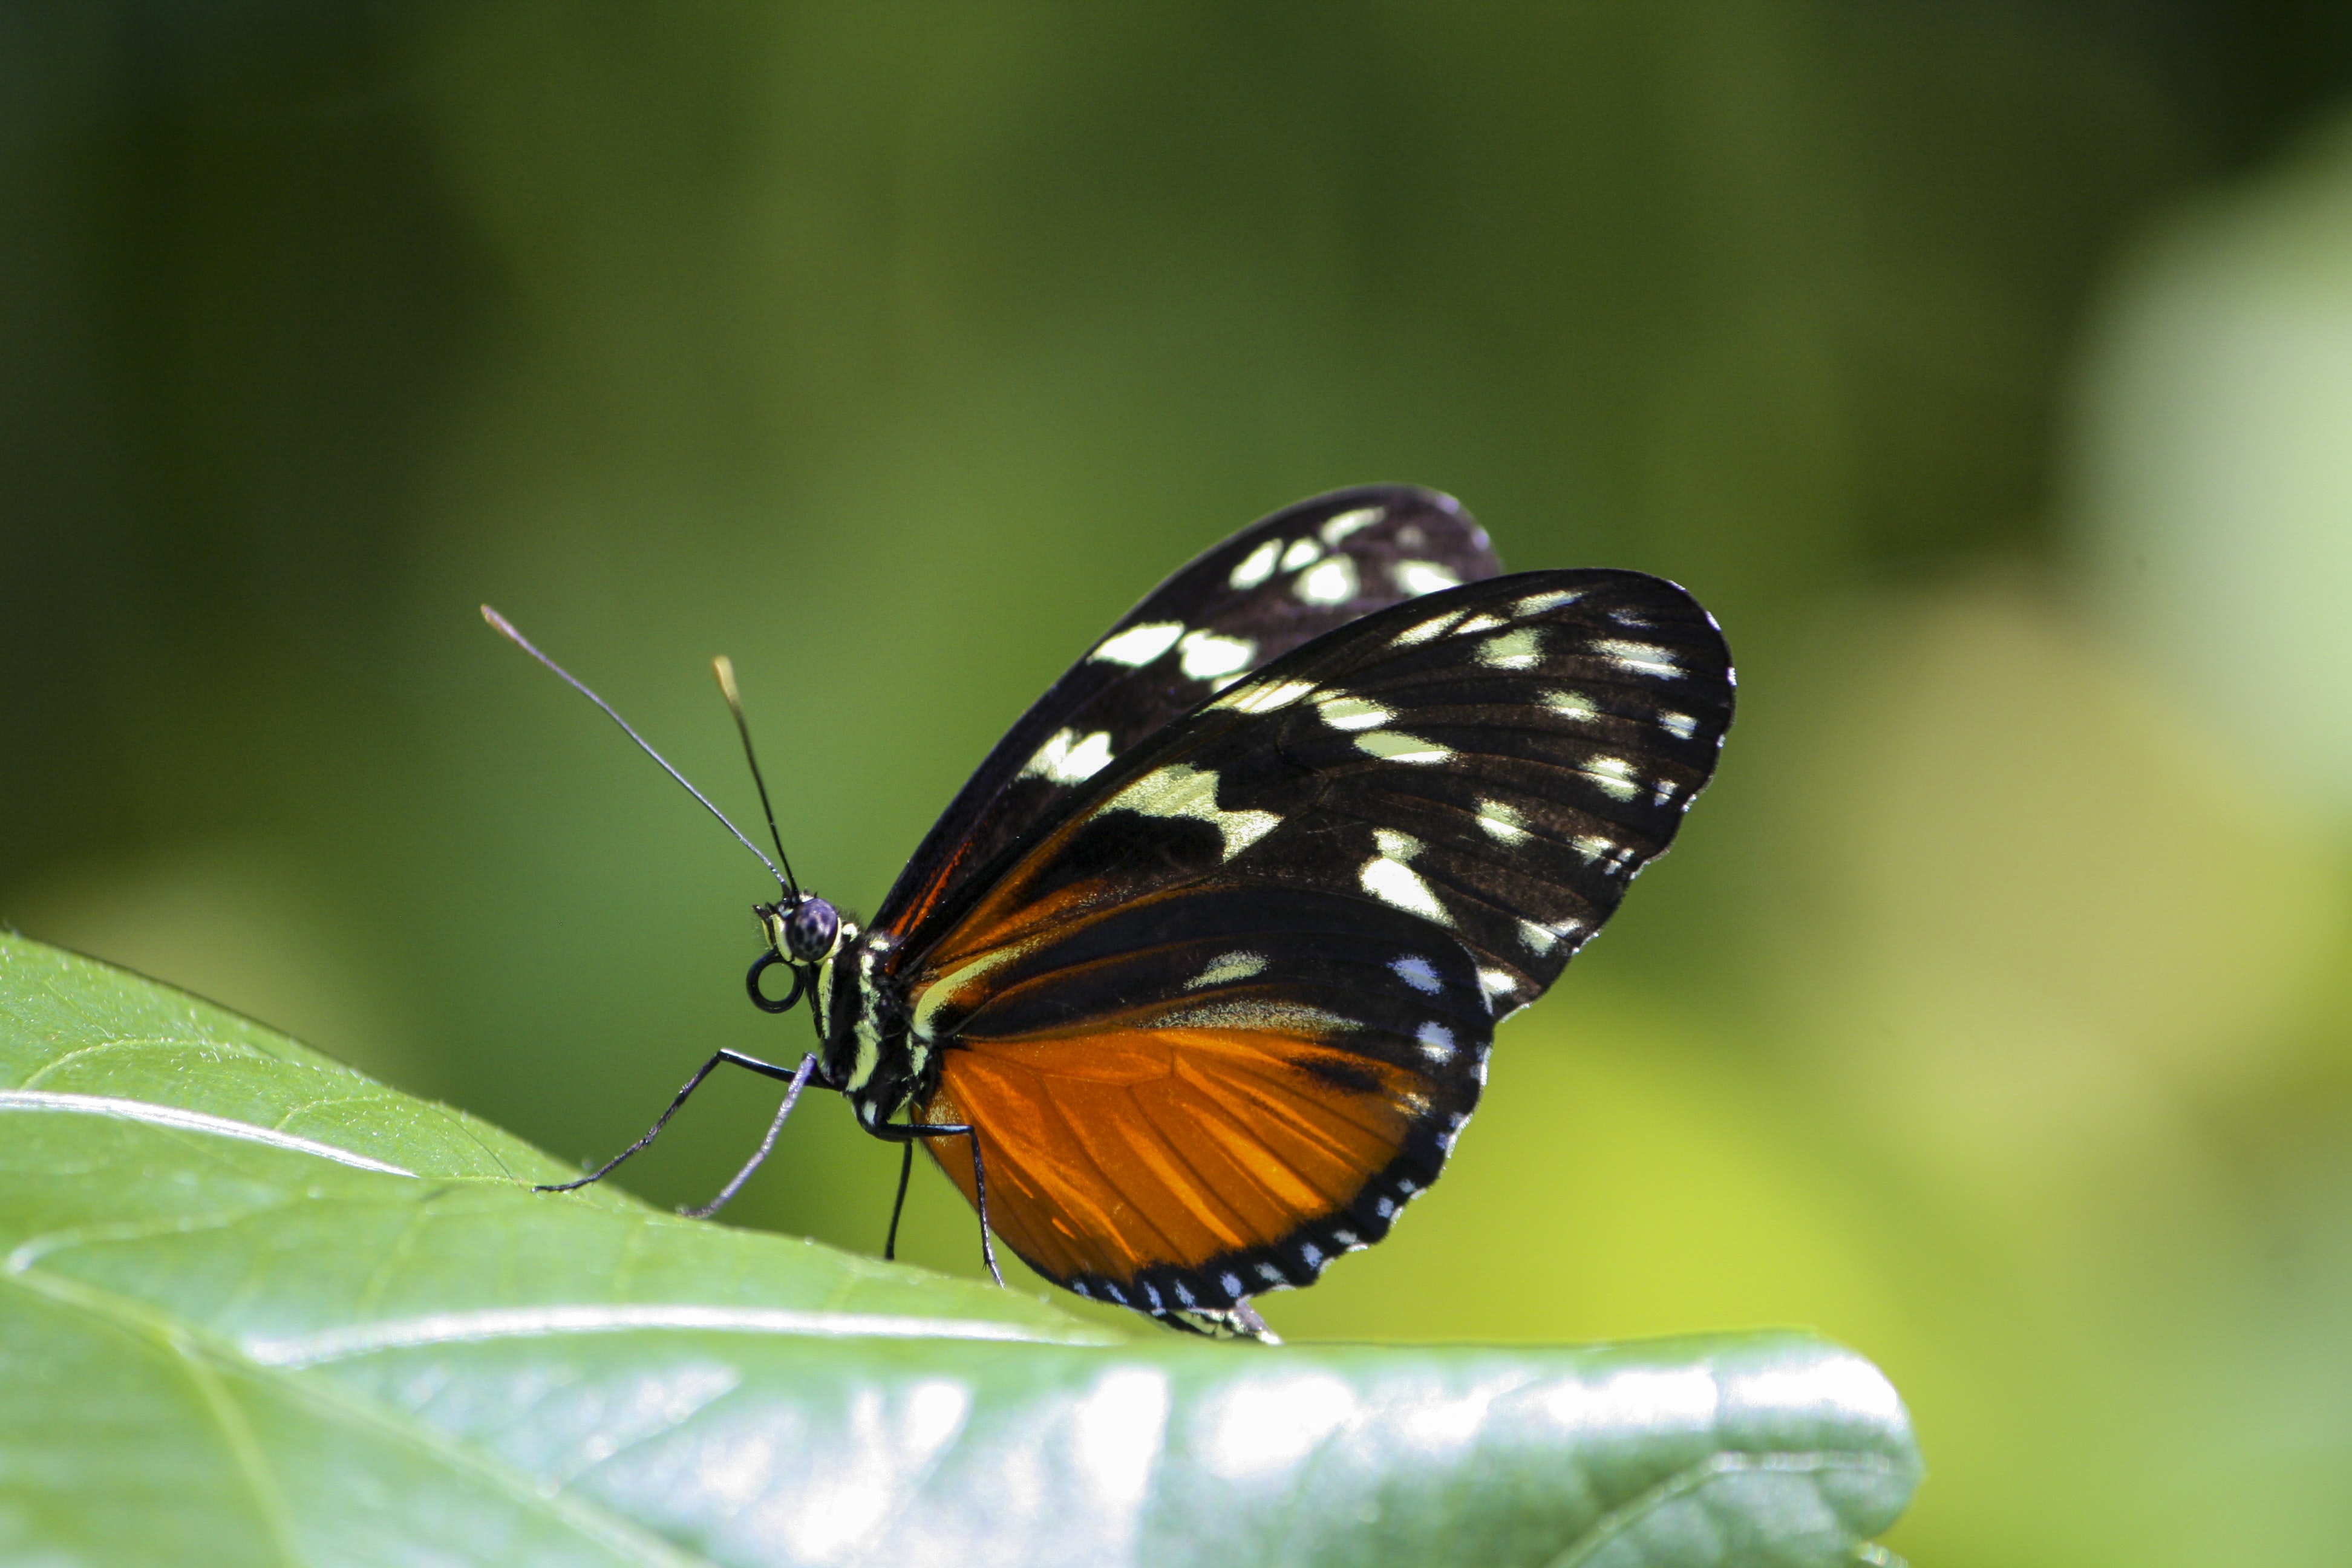 An orange and black butterfly on a leaf.